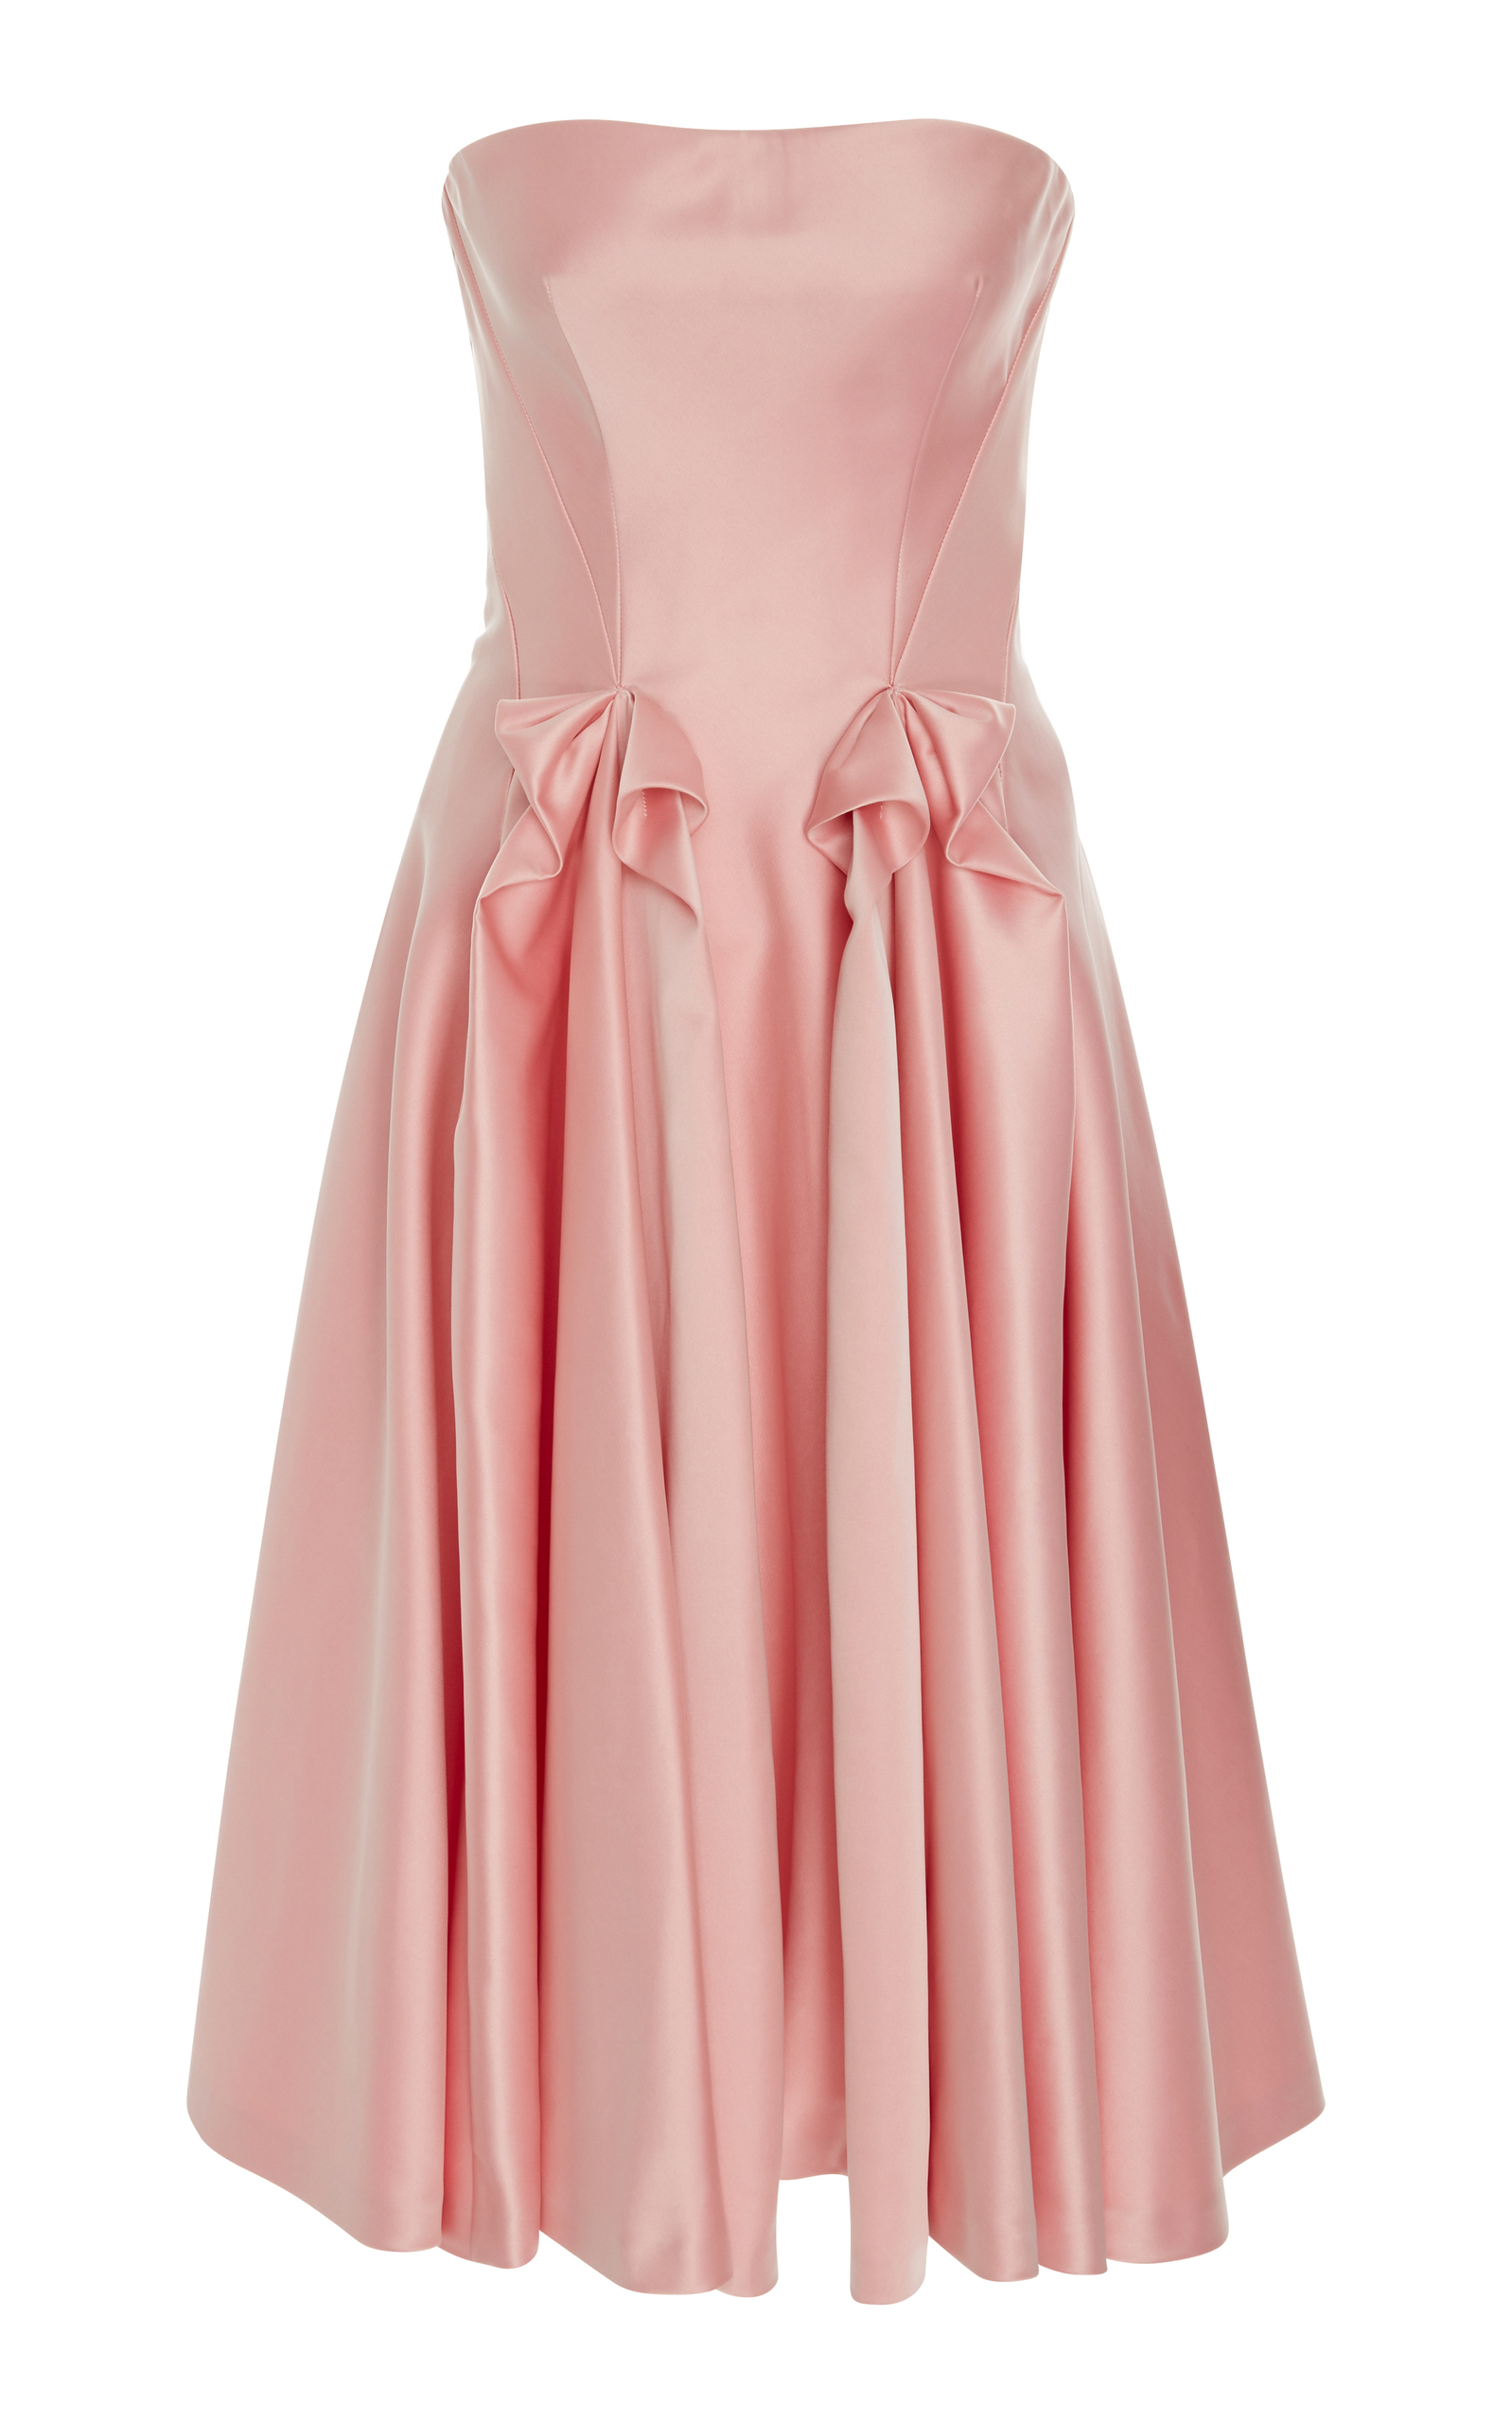 ZAC POSEN STRAPLESS DOUBLE-FACE DUCHESS SATIN TEA-LENGTH COCKTAIL ...